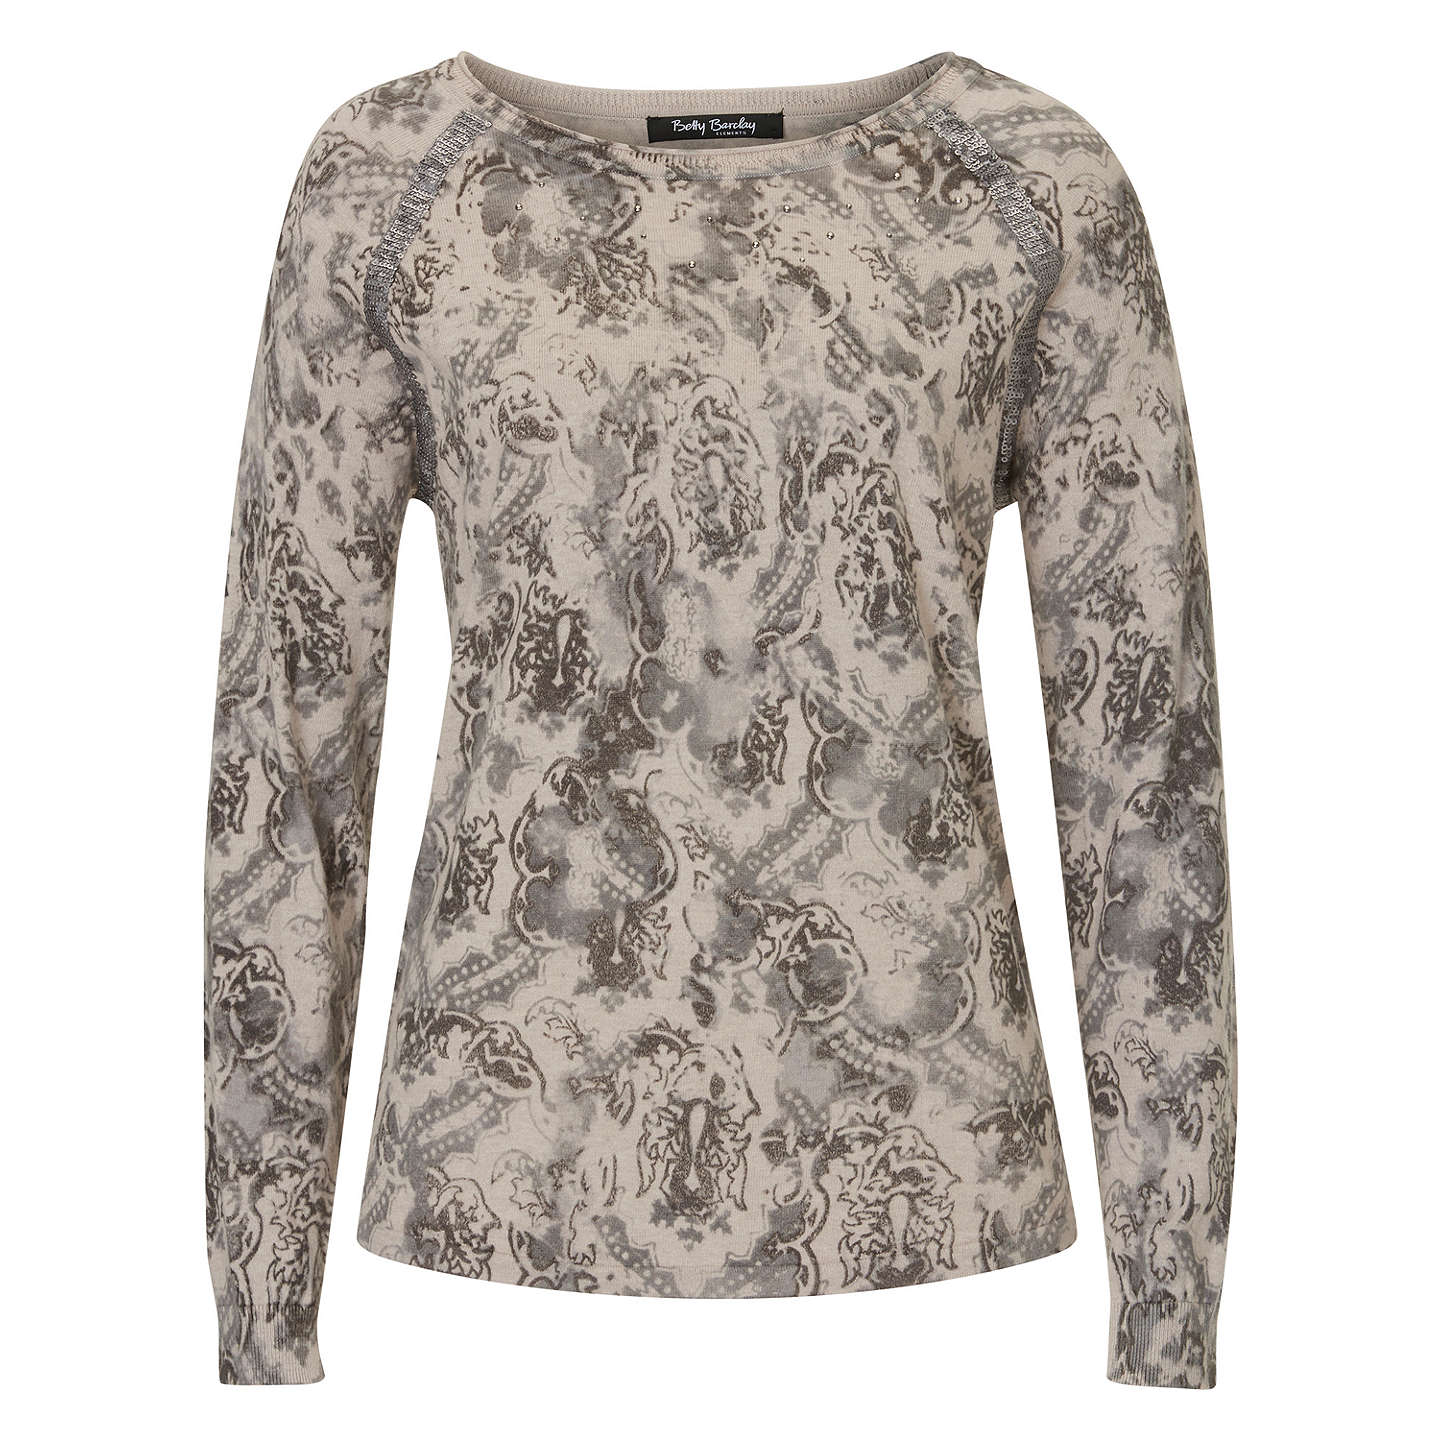 BuyBetty Barclay Embellished Print Jumper, Grey, 10 Online at johnlewis.com